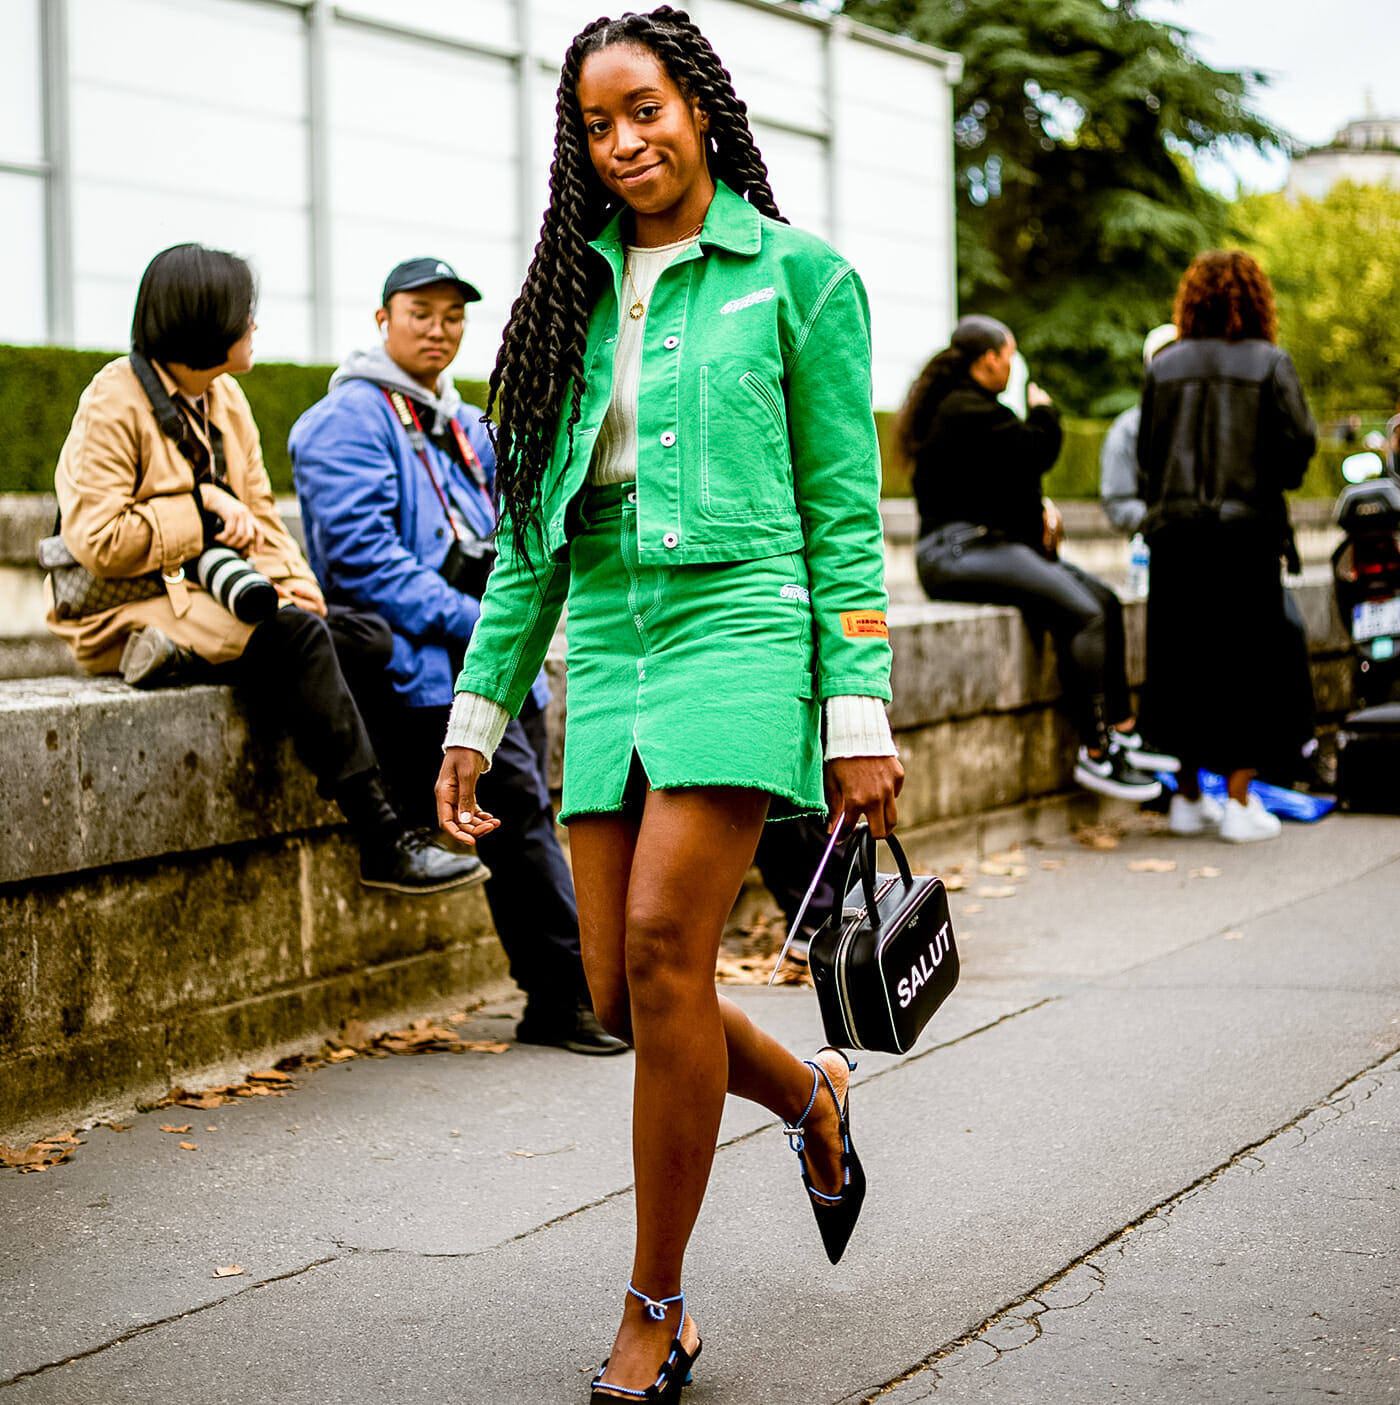 481 of The Best Street Style Looks From Paris Fashion Week